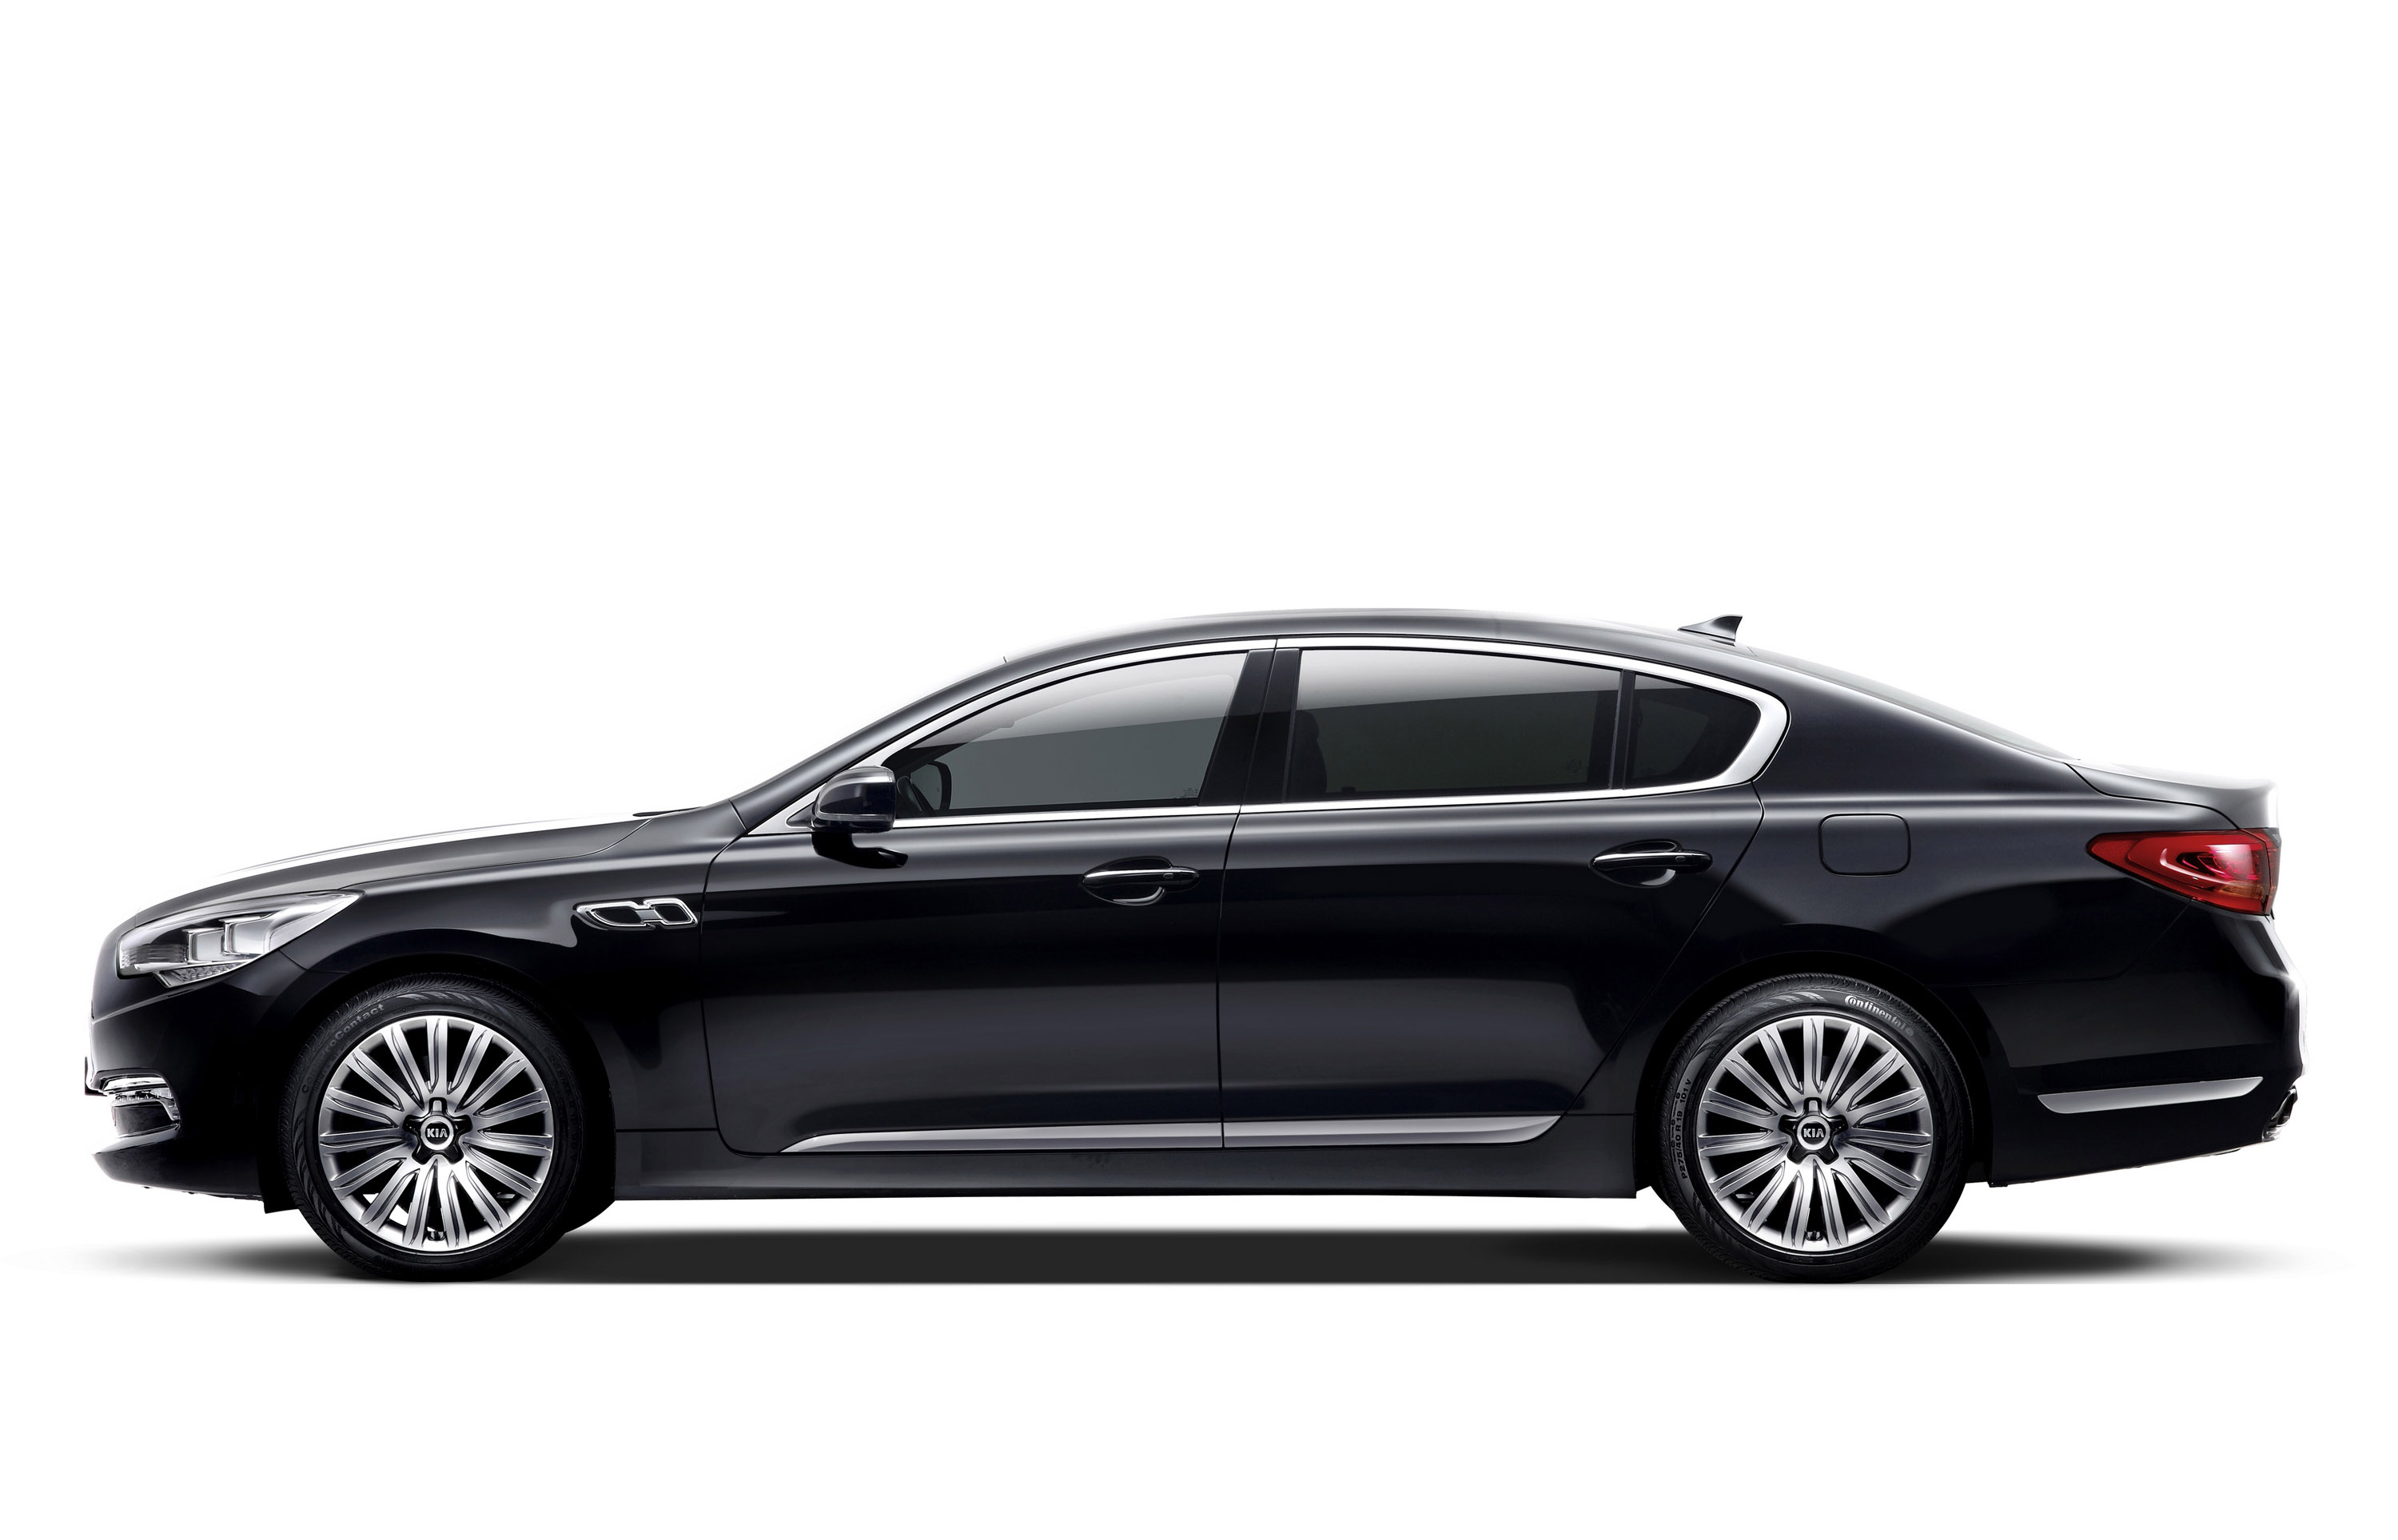 Car Wallpapers With Names Kia With An All New K9 Flagship Sedan In Korea